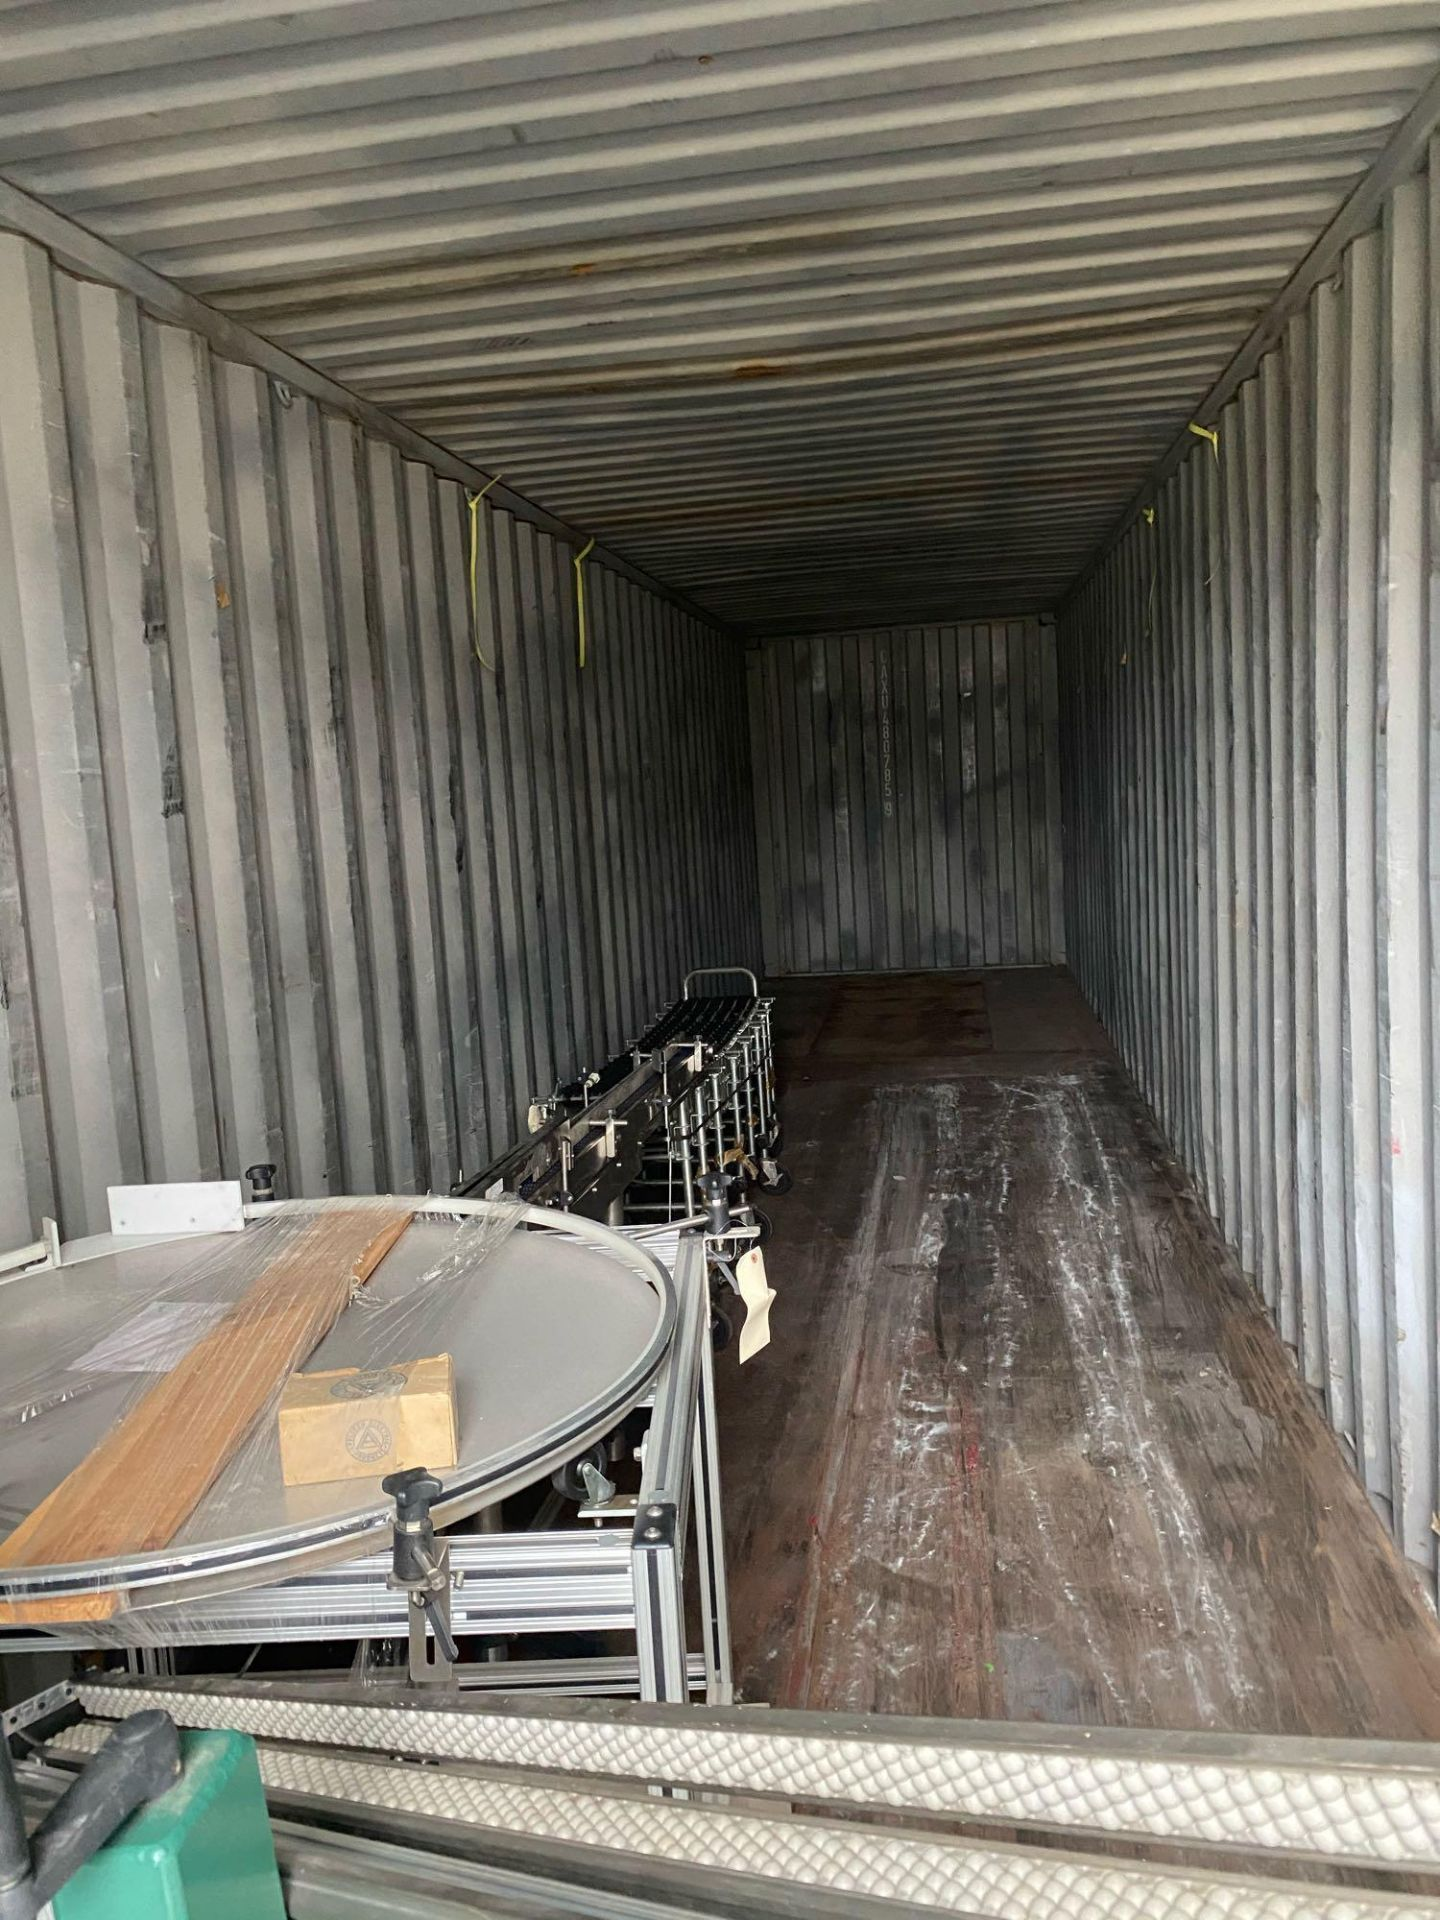 Shipping Containers - Image 2 of 3